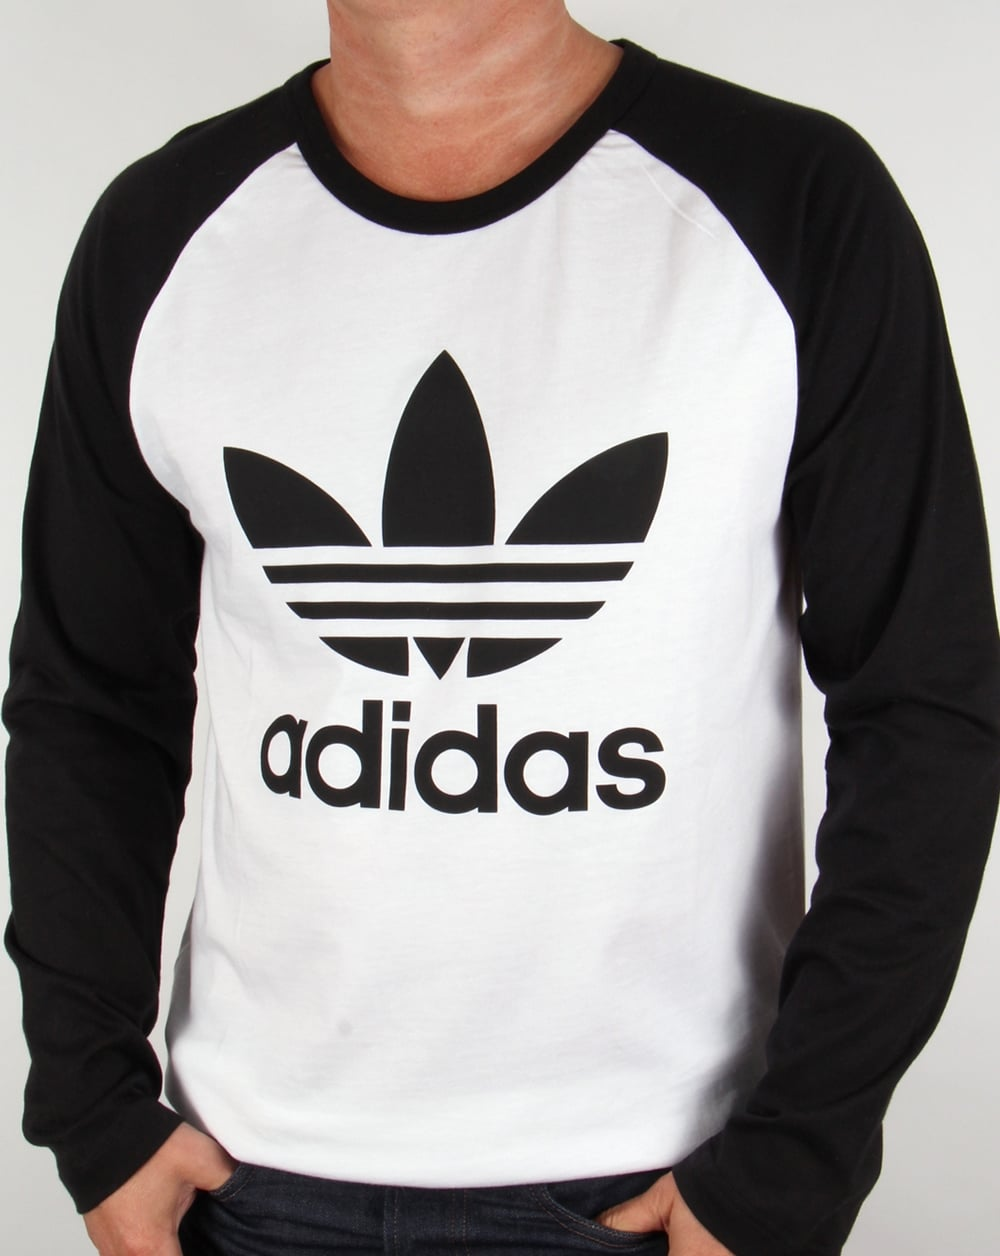 Adidas t shirt black white - Adidas Originals Trefoil Long Sleeve Raglan T Shirt White Black